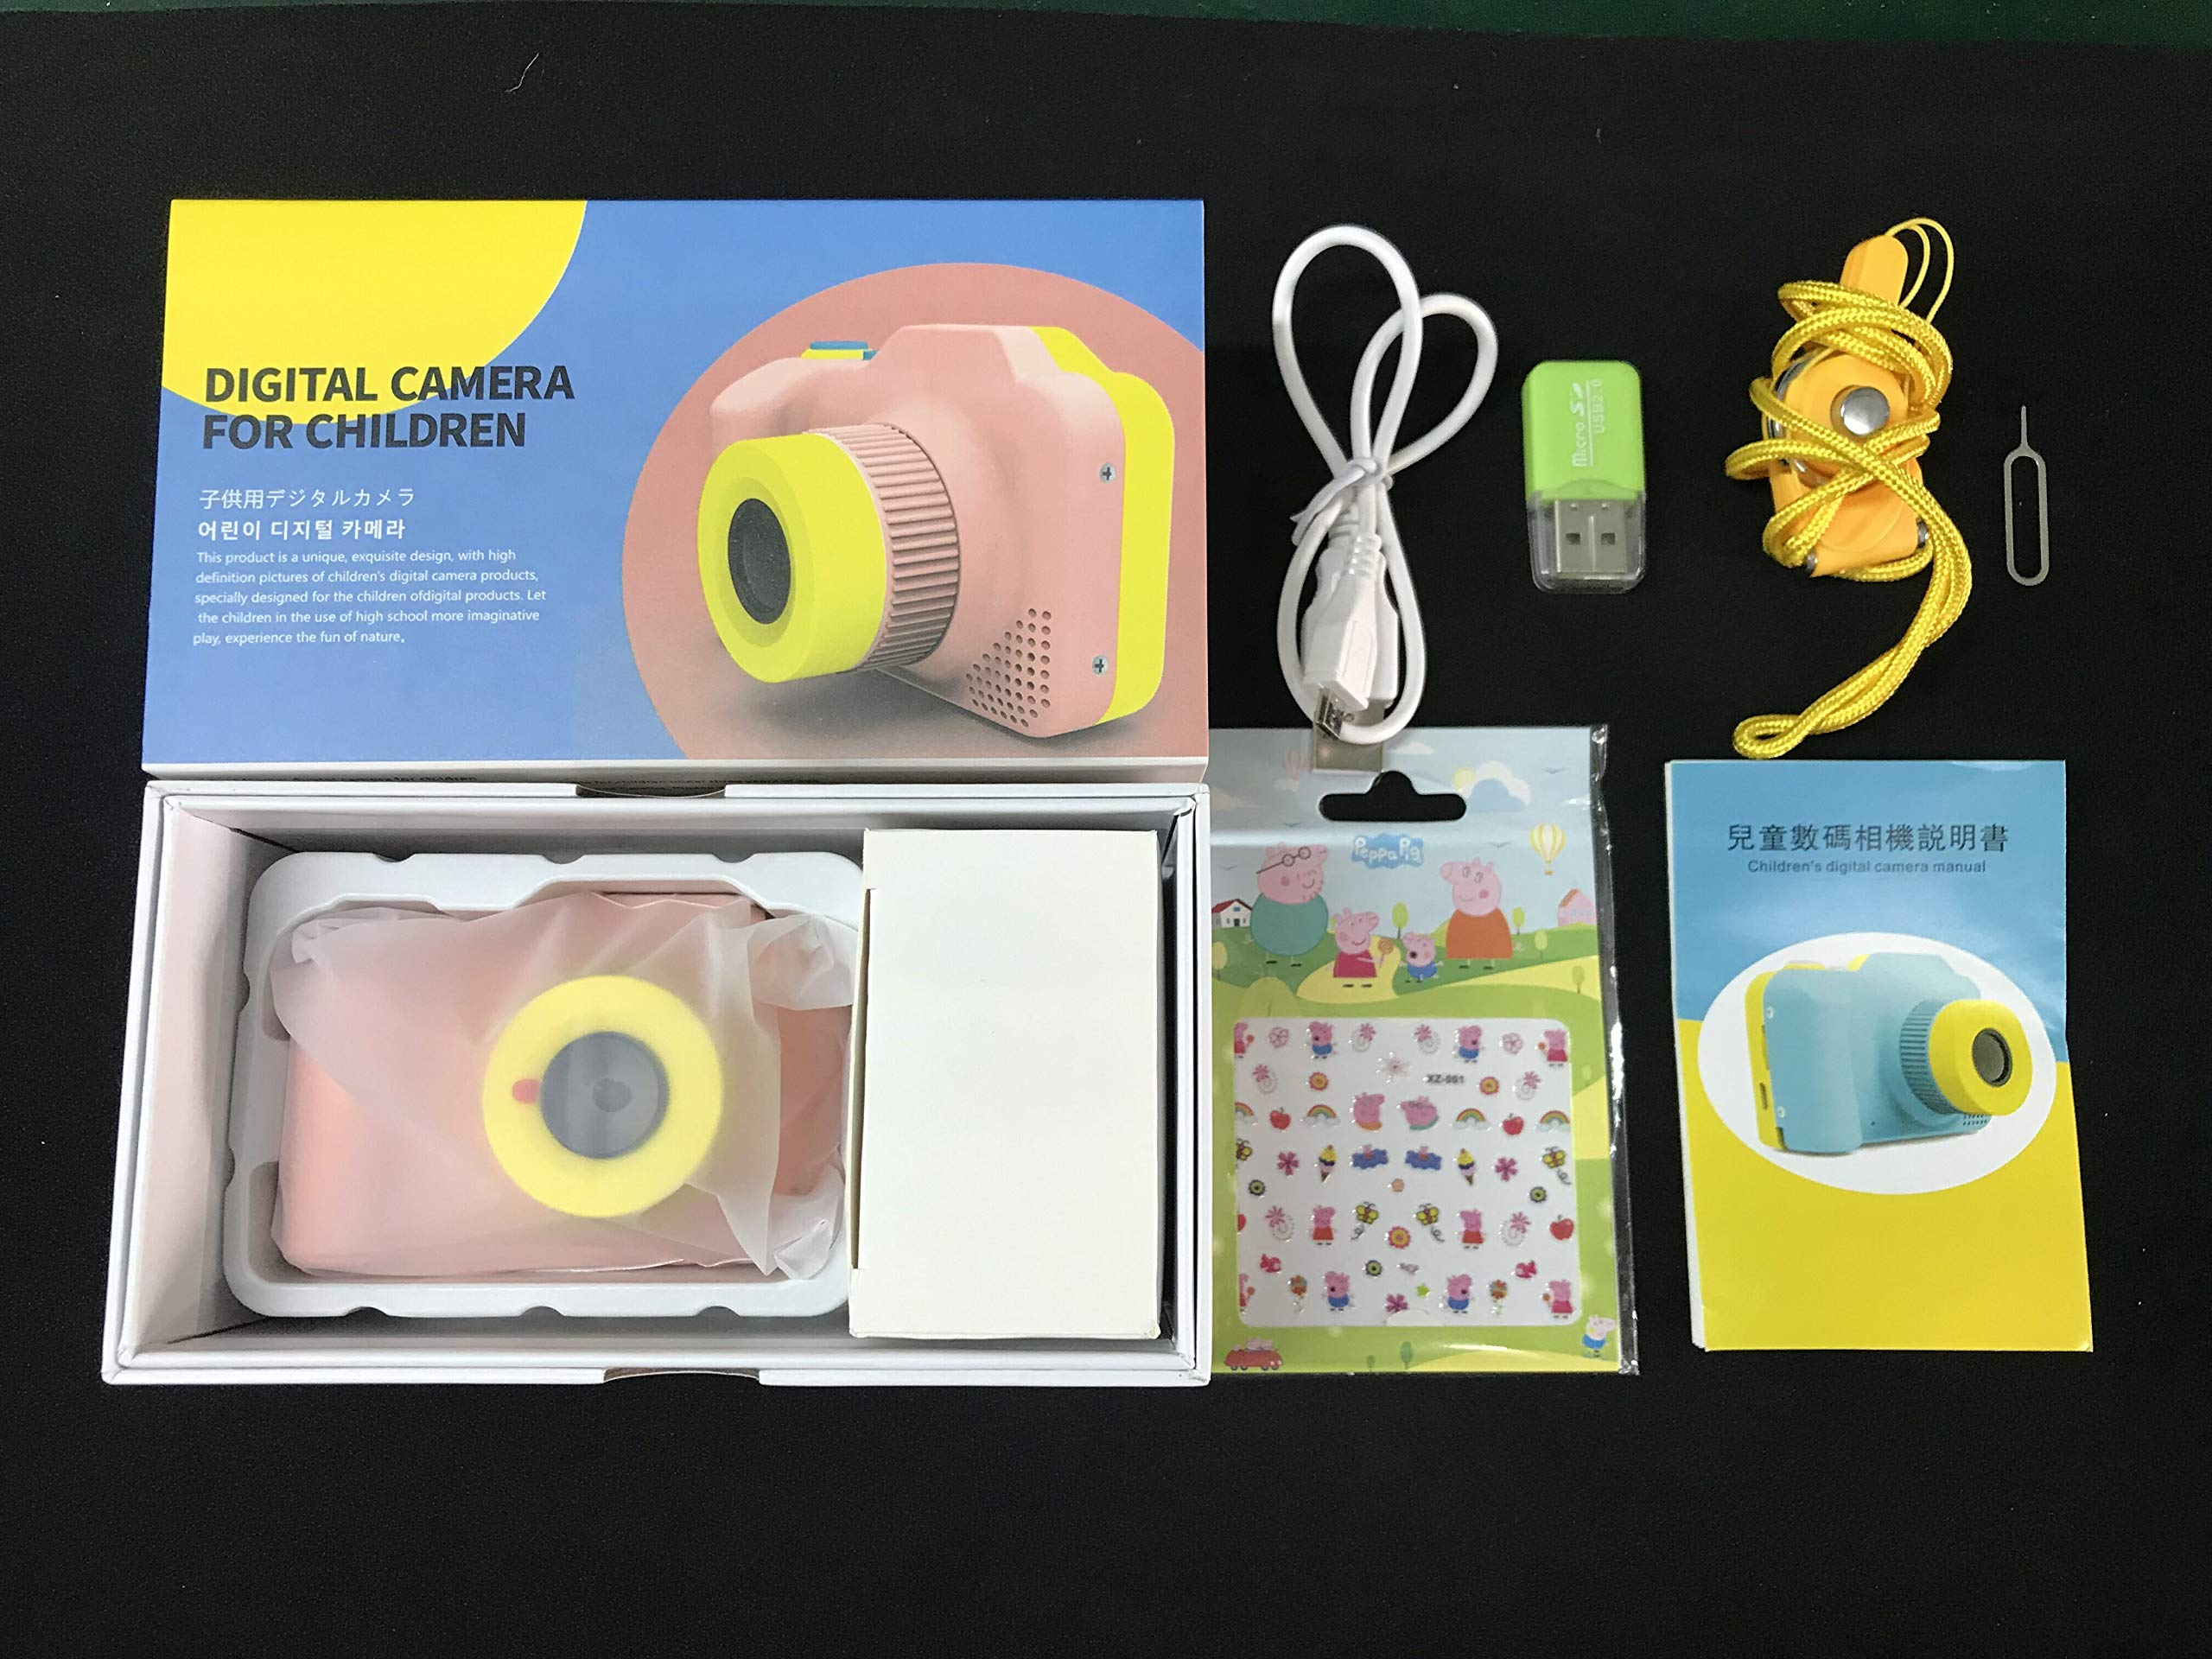 [Upgraded]Kids Camera 1080P Rechargeable Digital Front and Rear Selfie Camera Child Camcorder for Outdoor Play, for 3-10 Years Old Children(Barbie Pink) by HYKT (Image #7)